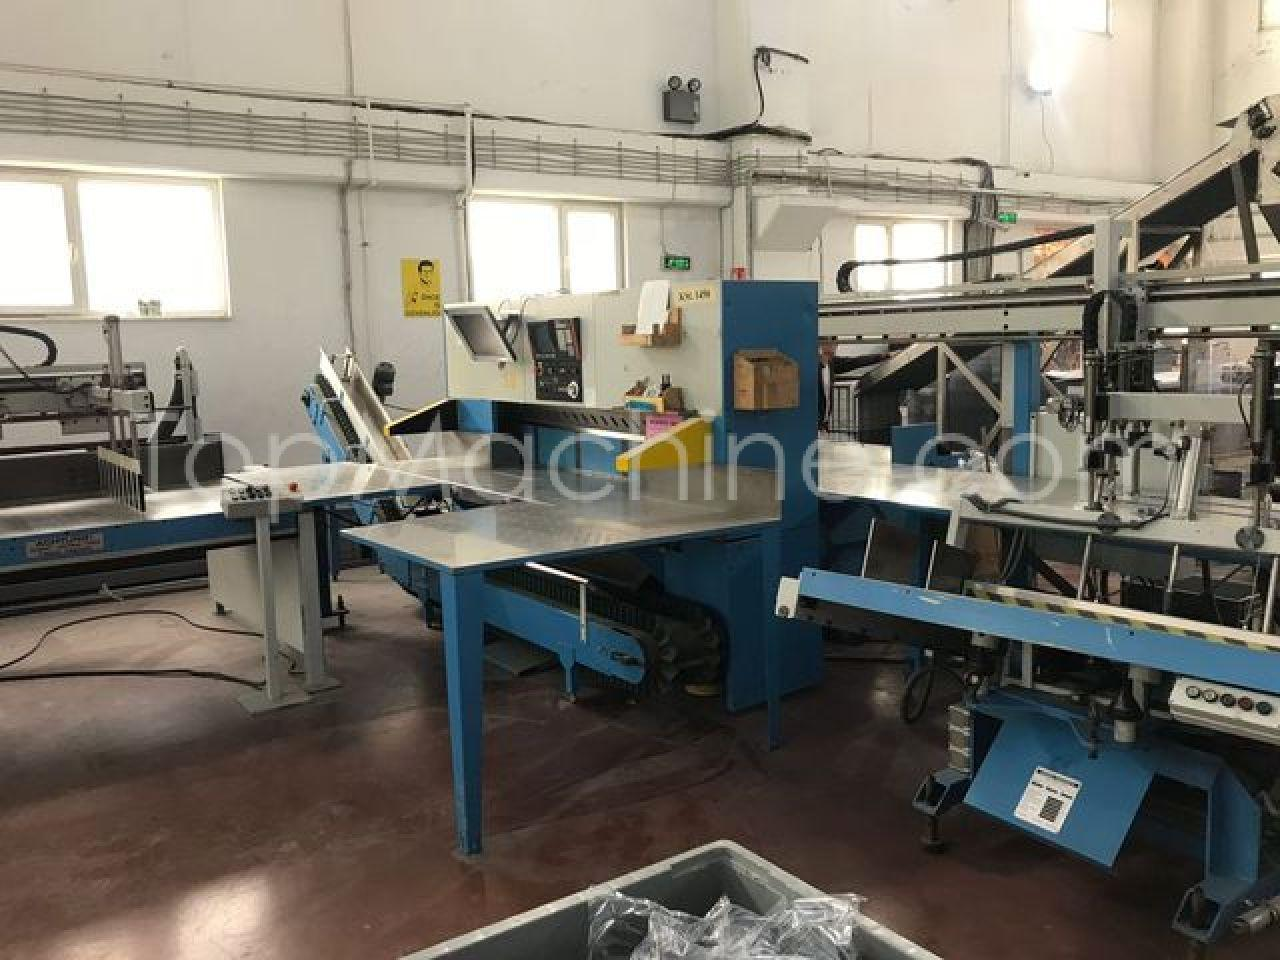 Used SCHNEIDER 155 Paper Sheeters and Guillotines